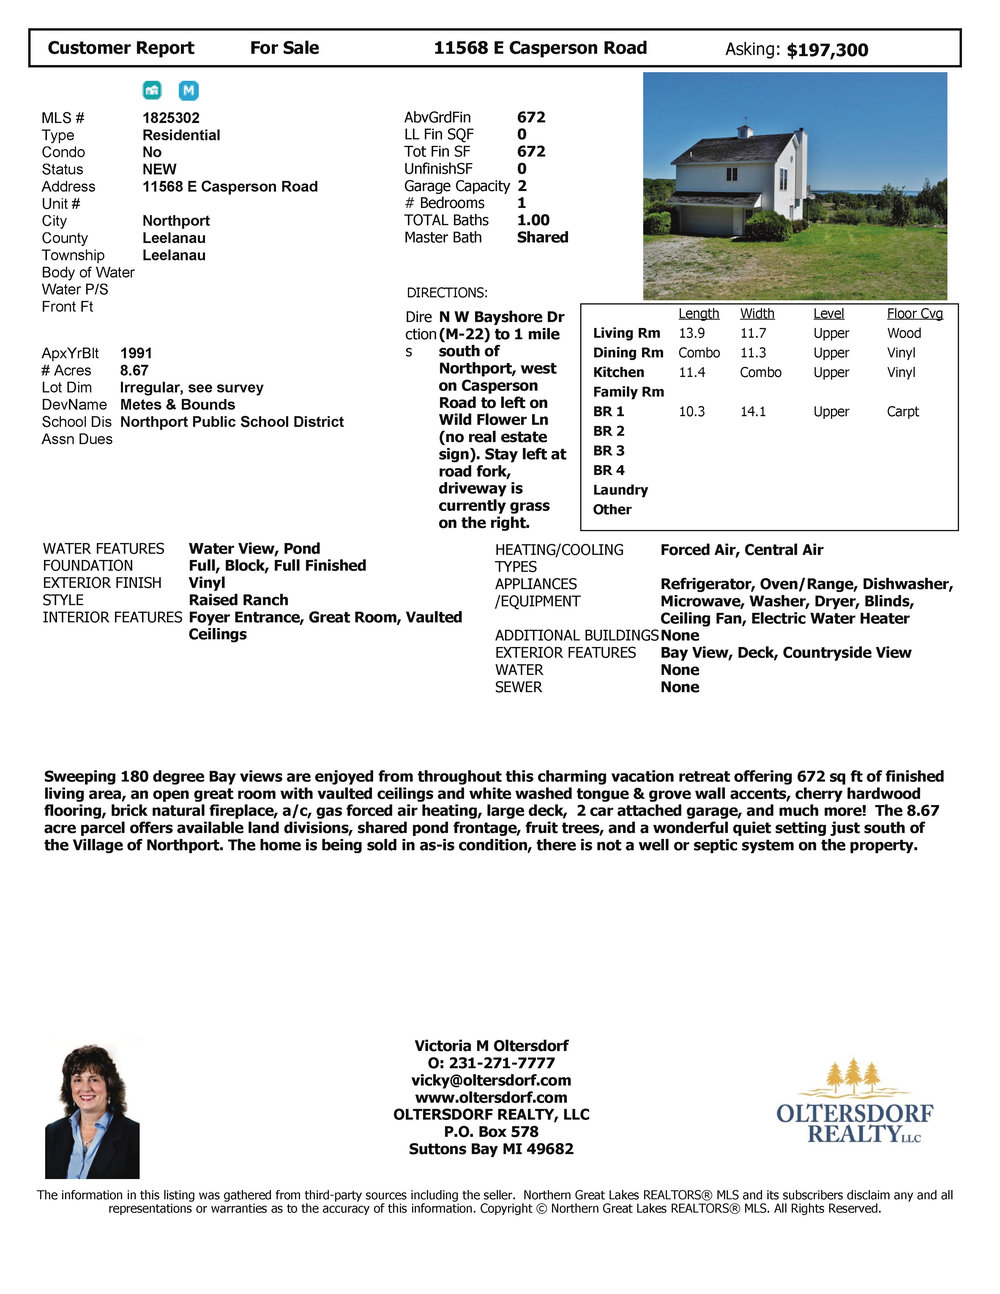 11568 E Casperson Road, Northport – For Sale by Oltersdorf Realty LLC, Leelanau County Realtors - Marketing Packet (7).jpg